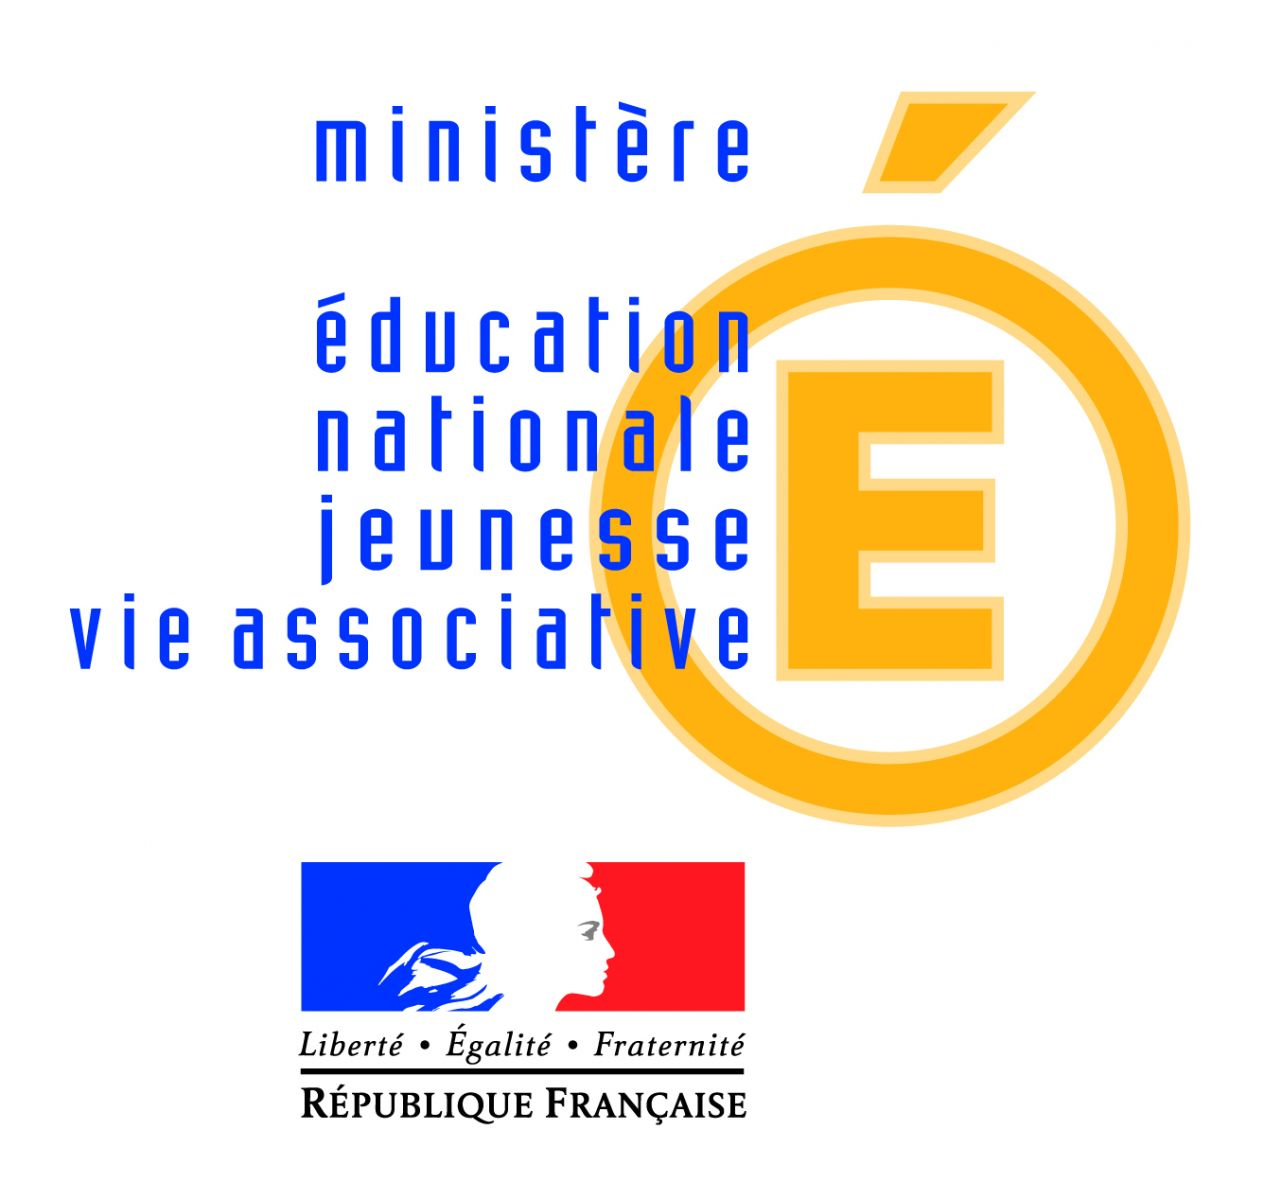 logo de l'education national jeune'